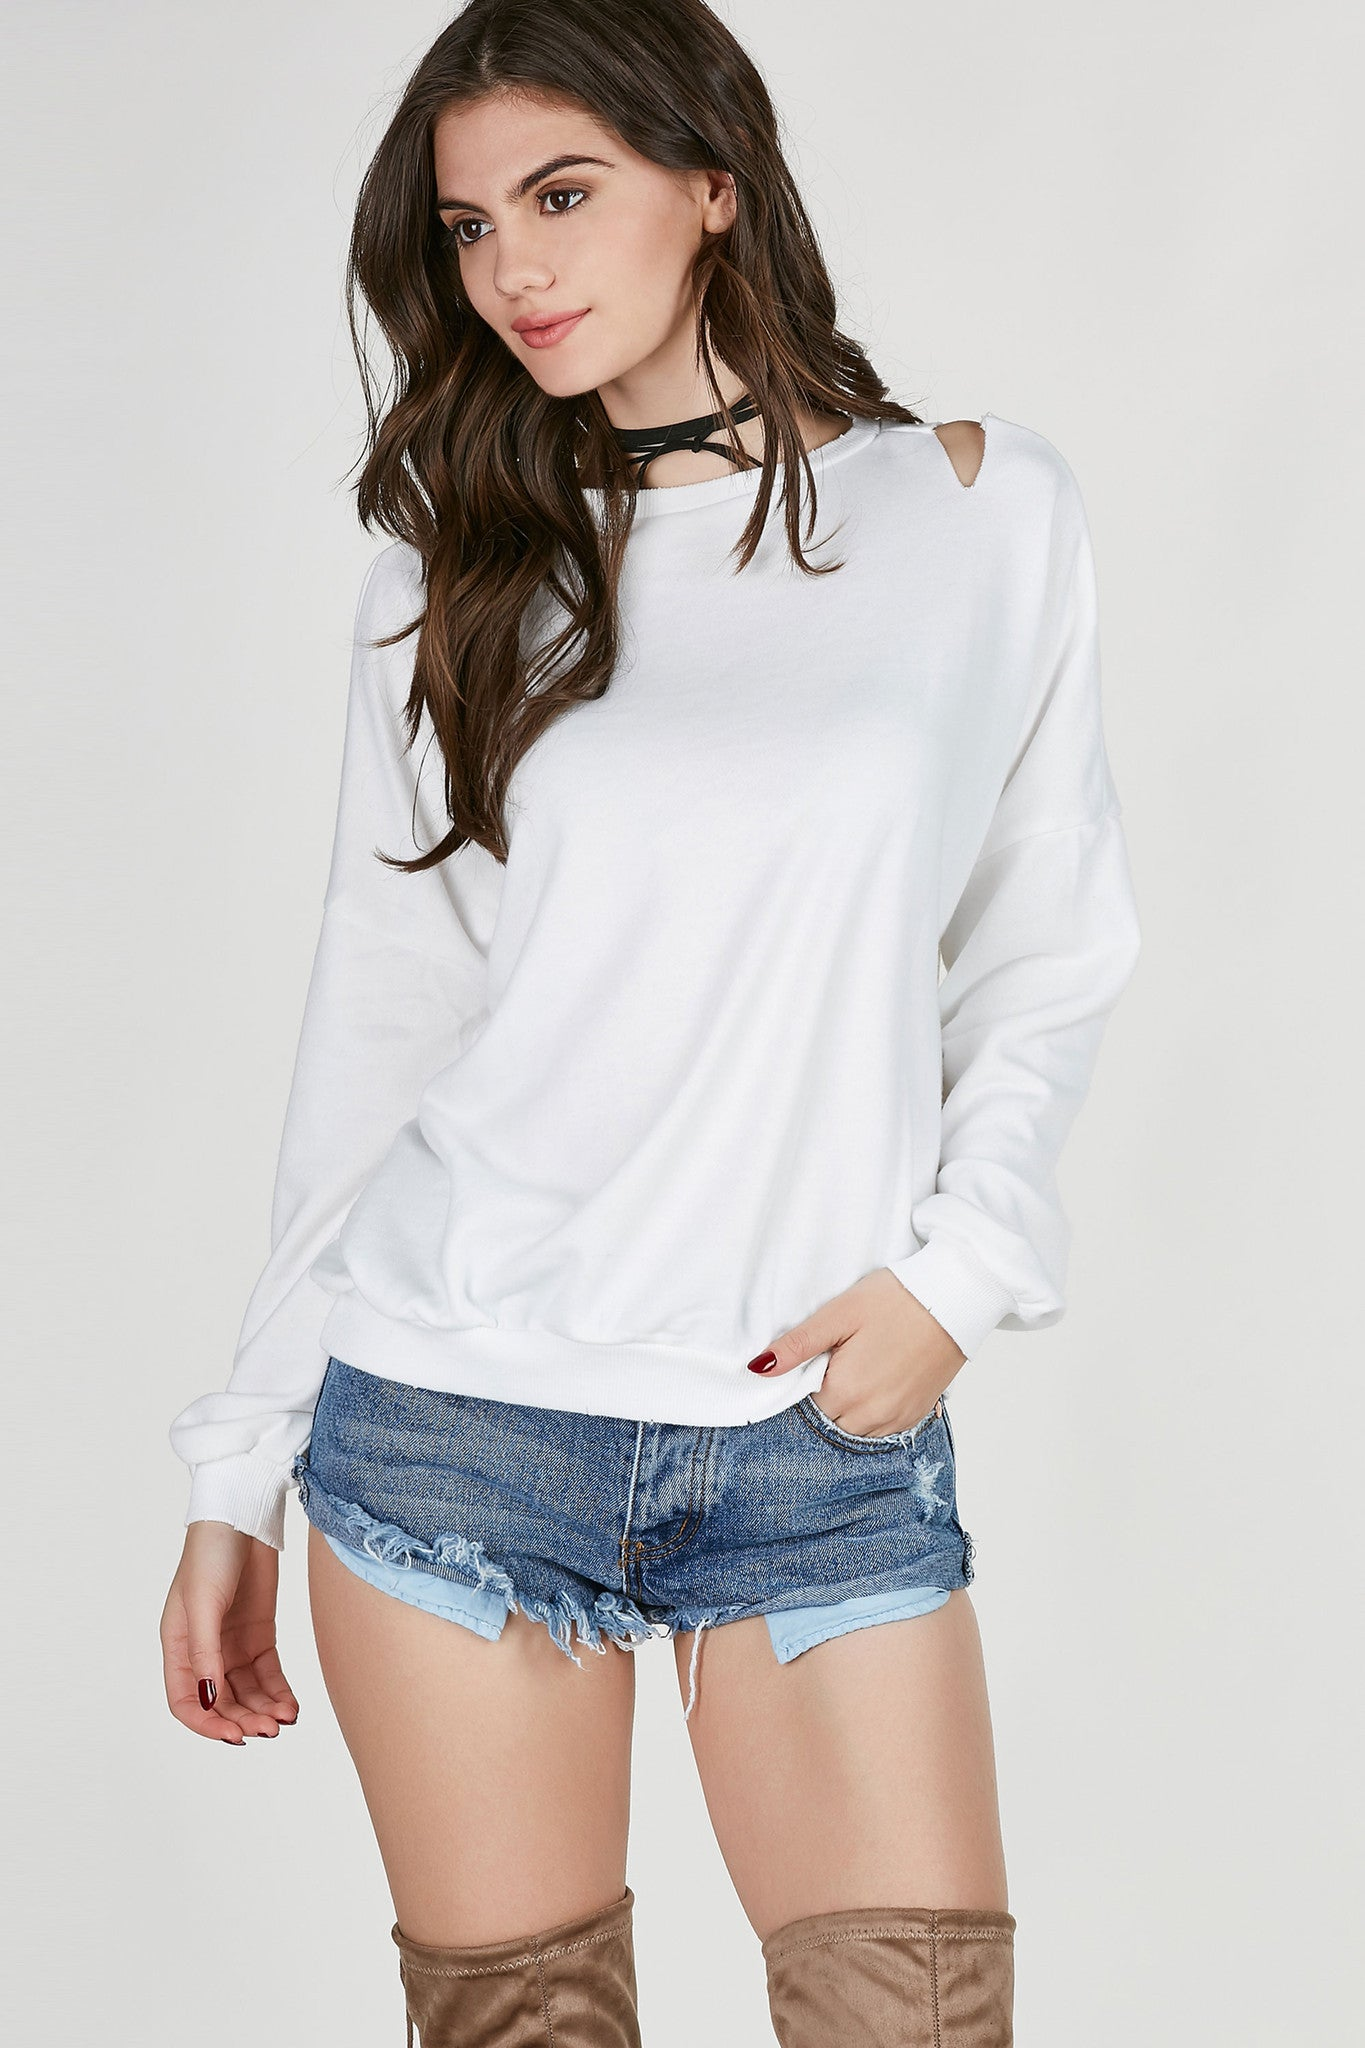 Crew neck long sleeve sweatshirt with distressing throughout. Dropped shoulder seams with oversized fit.